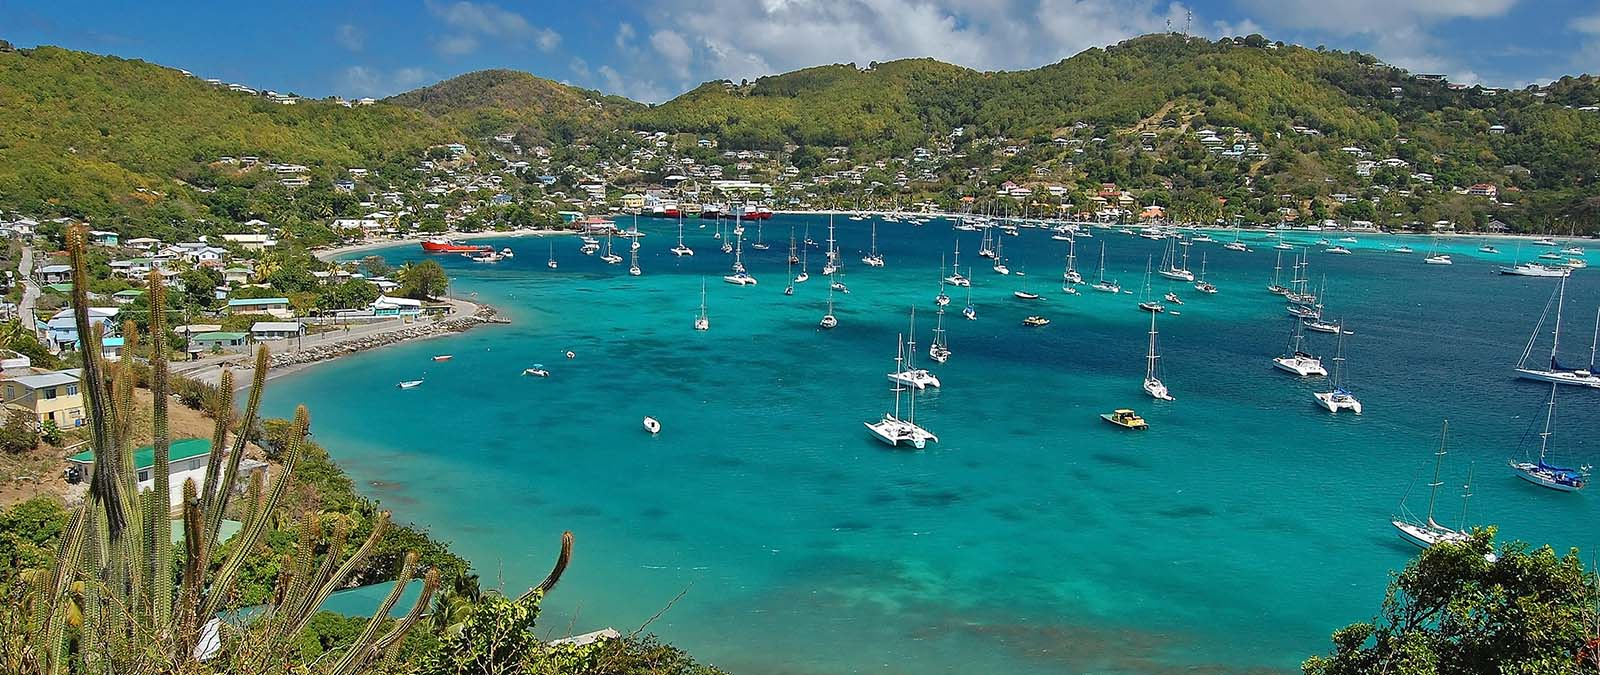 """More commonly known as the """"Spice Isle"""", Grenada offers beautiful unspoilt beaches, diving, sailing, hiking and so much more."""